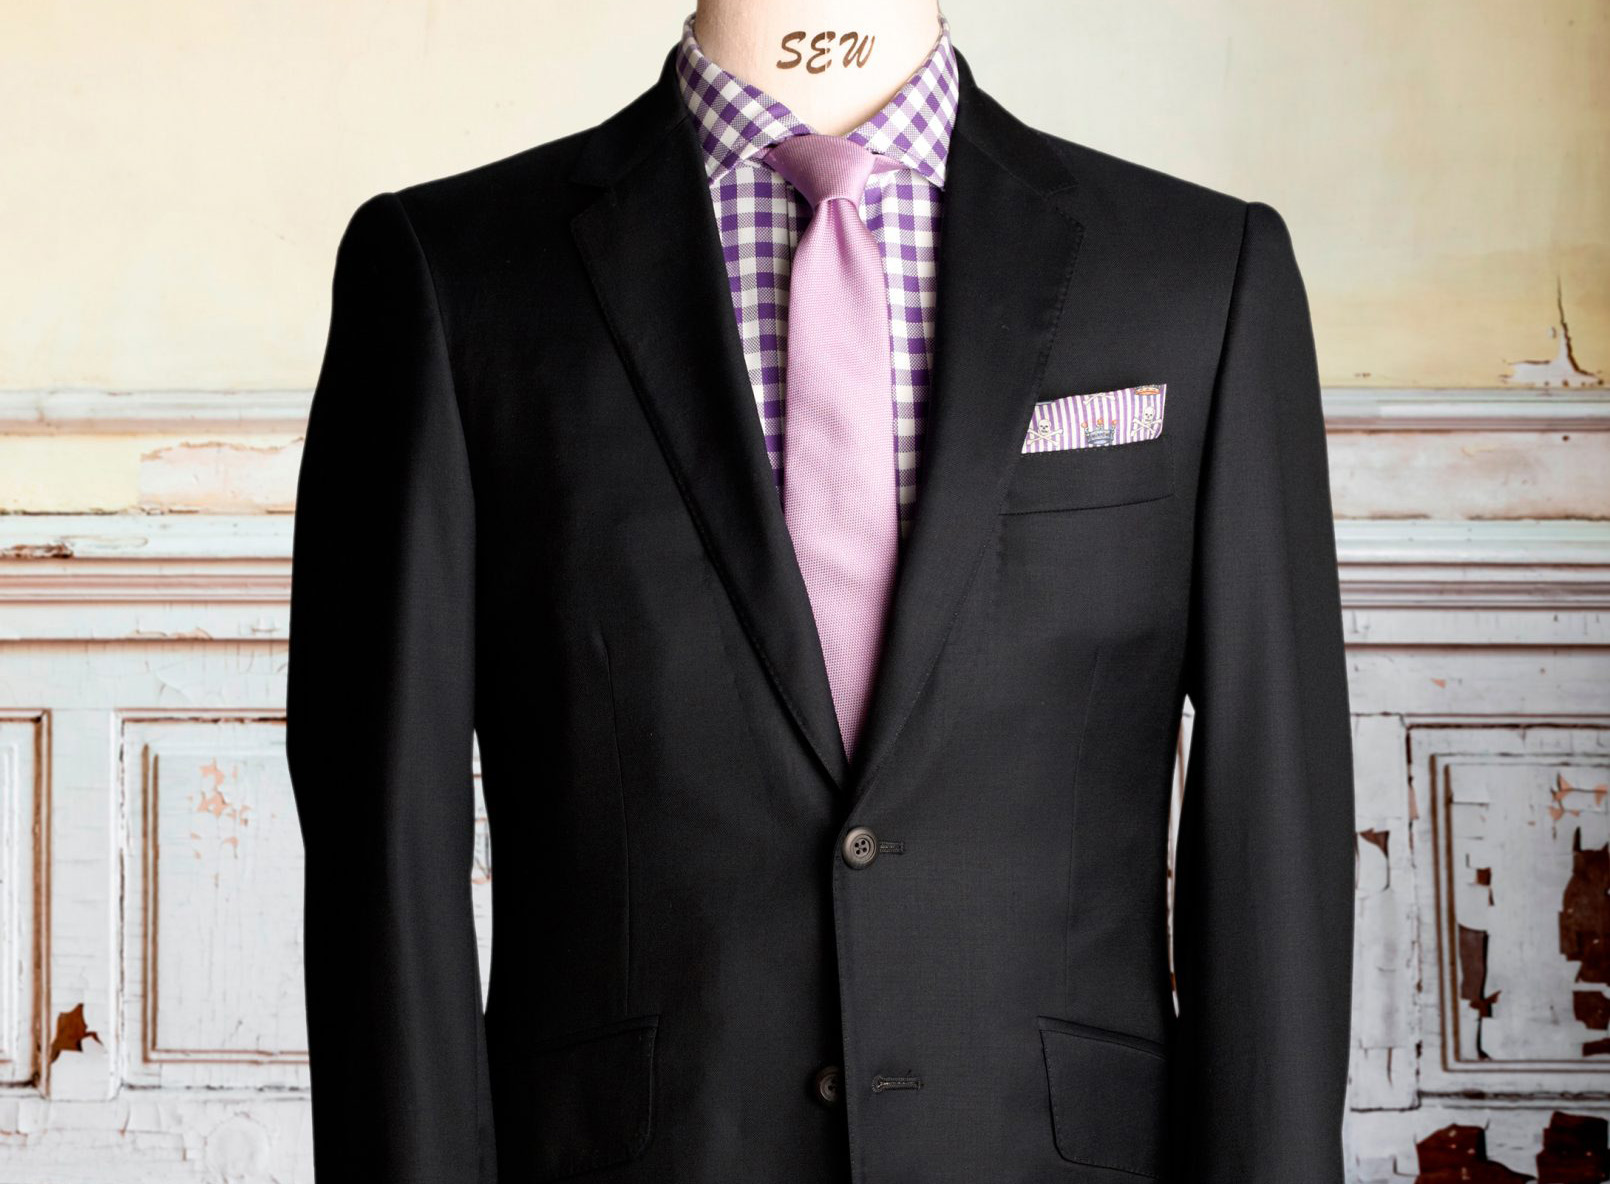 Custom Suits & Shirts NYC, Best of the Best